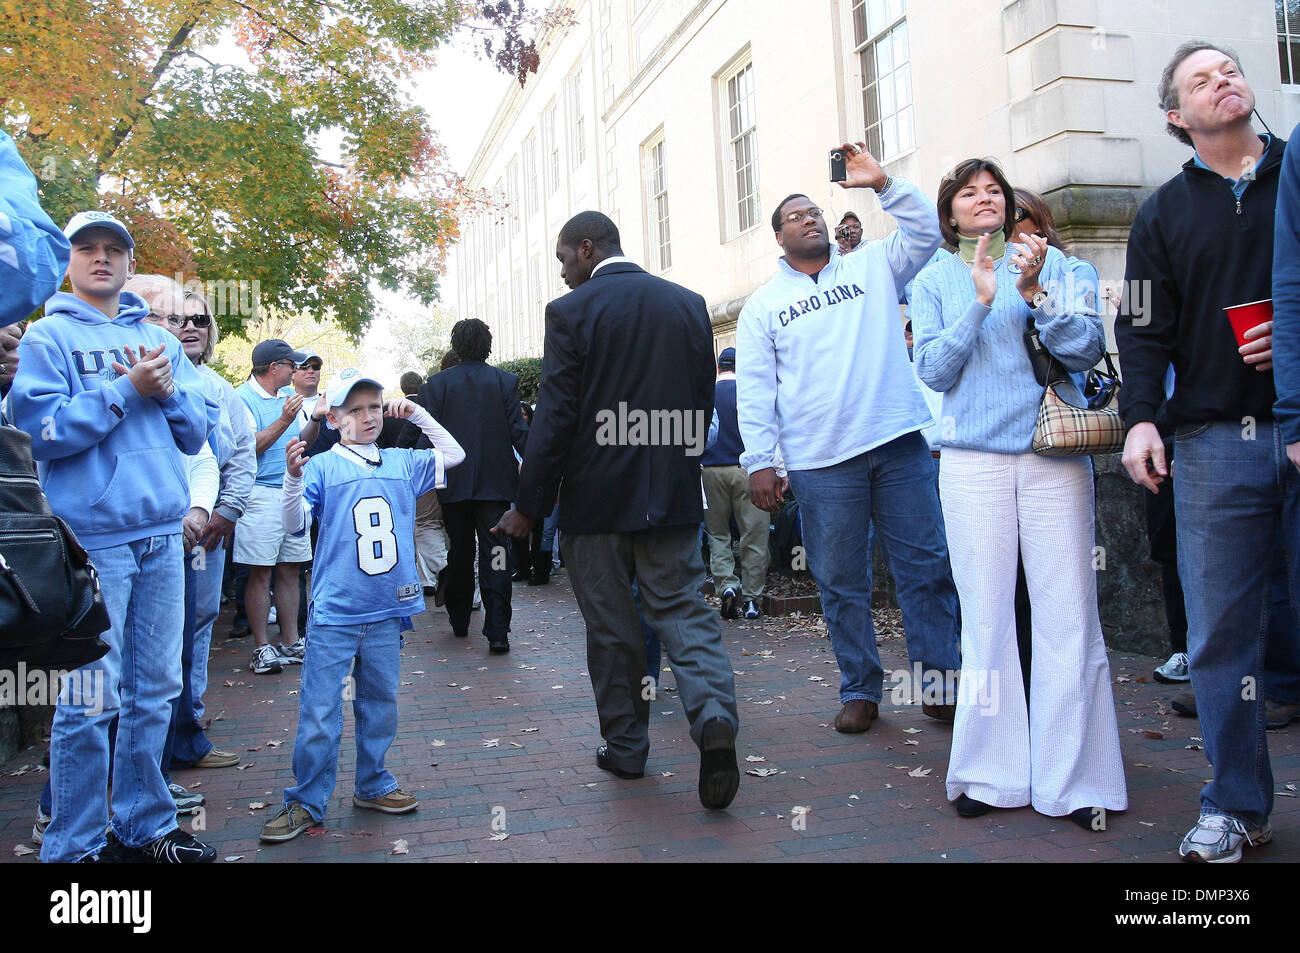 Nov. 07, 2009 - Chapel Hill, North Carolina, U.S - November 7, 2009: UNC players greet fans at the pregame ''Well Walk'' from the Old Well to Kenan Stadium two hours prior to the game against Duke.  The University of North Carolina Tarheels played the Duke Blue Devils at Kenan Stadium in Chapel Hill, North Carolina (Credit Image: © Margaret Bowles/Southcreek Global/ZUMApress.com) - Stock Image